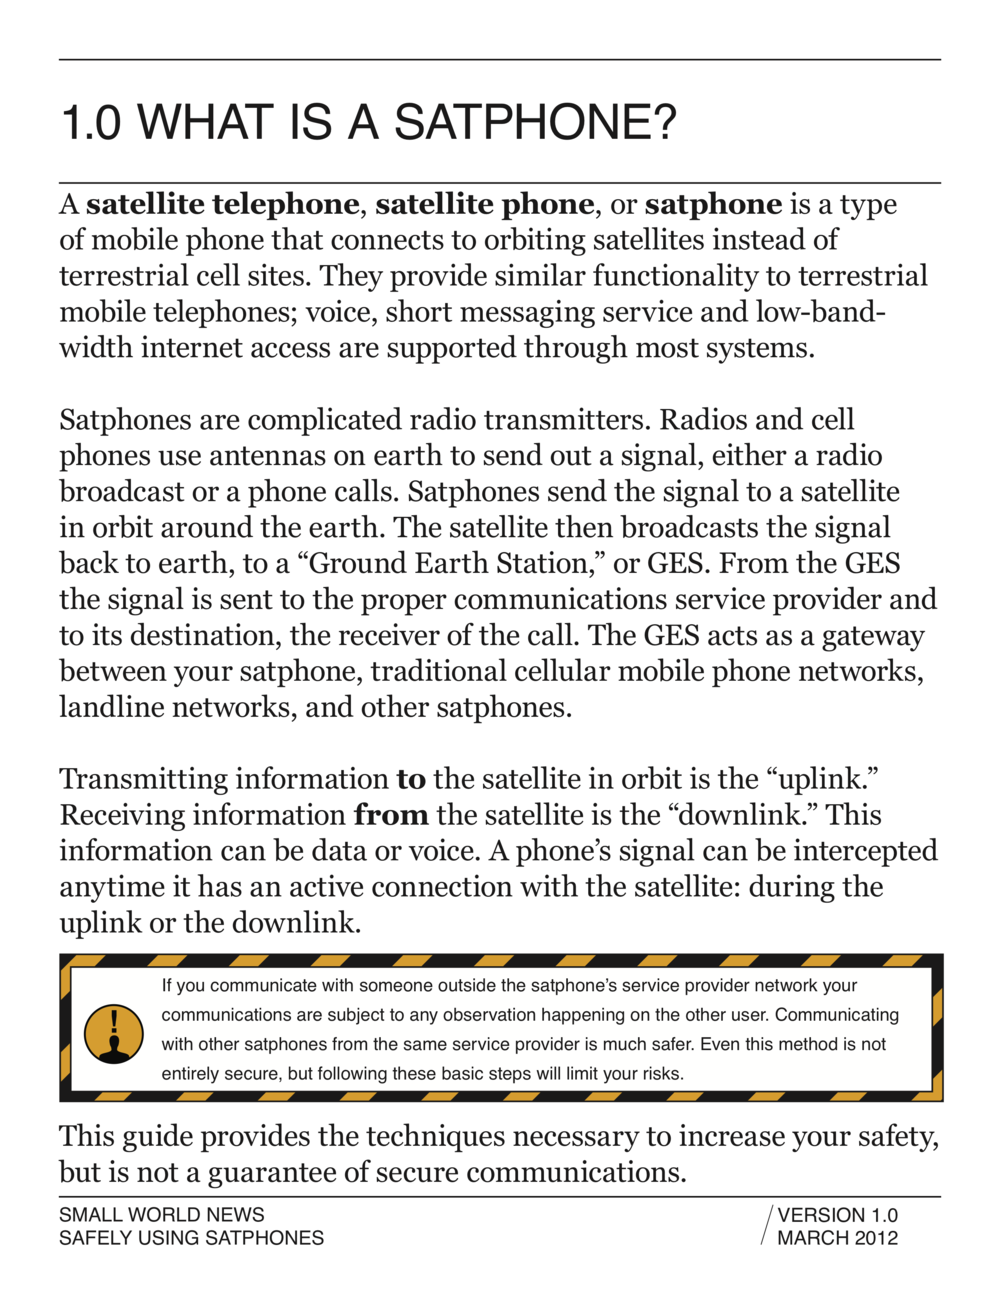 satphone 8.png